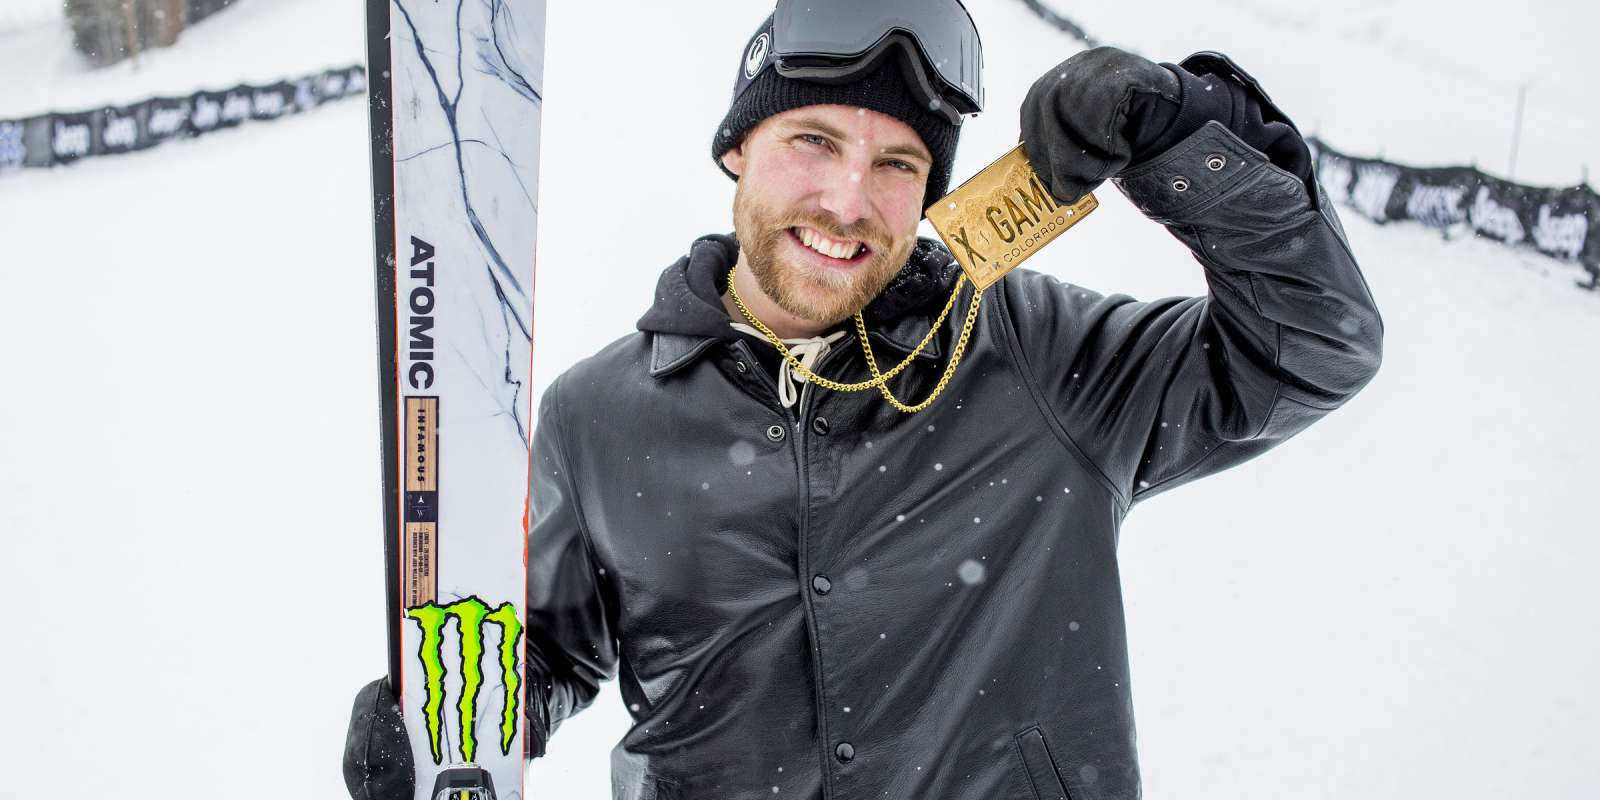 Jossi Wells takes gold at Winter X Games